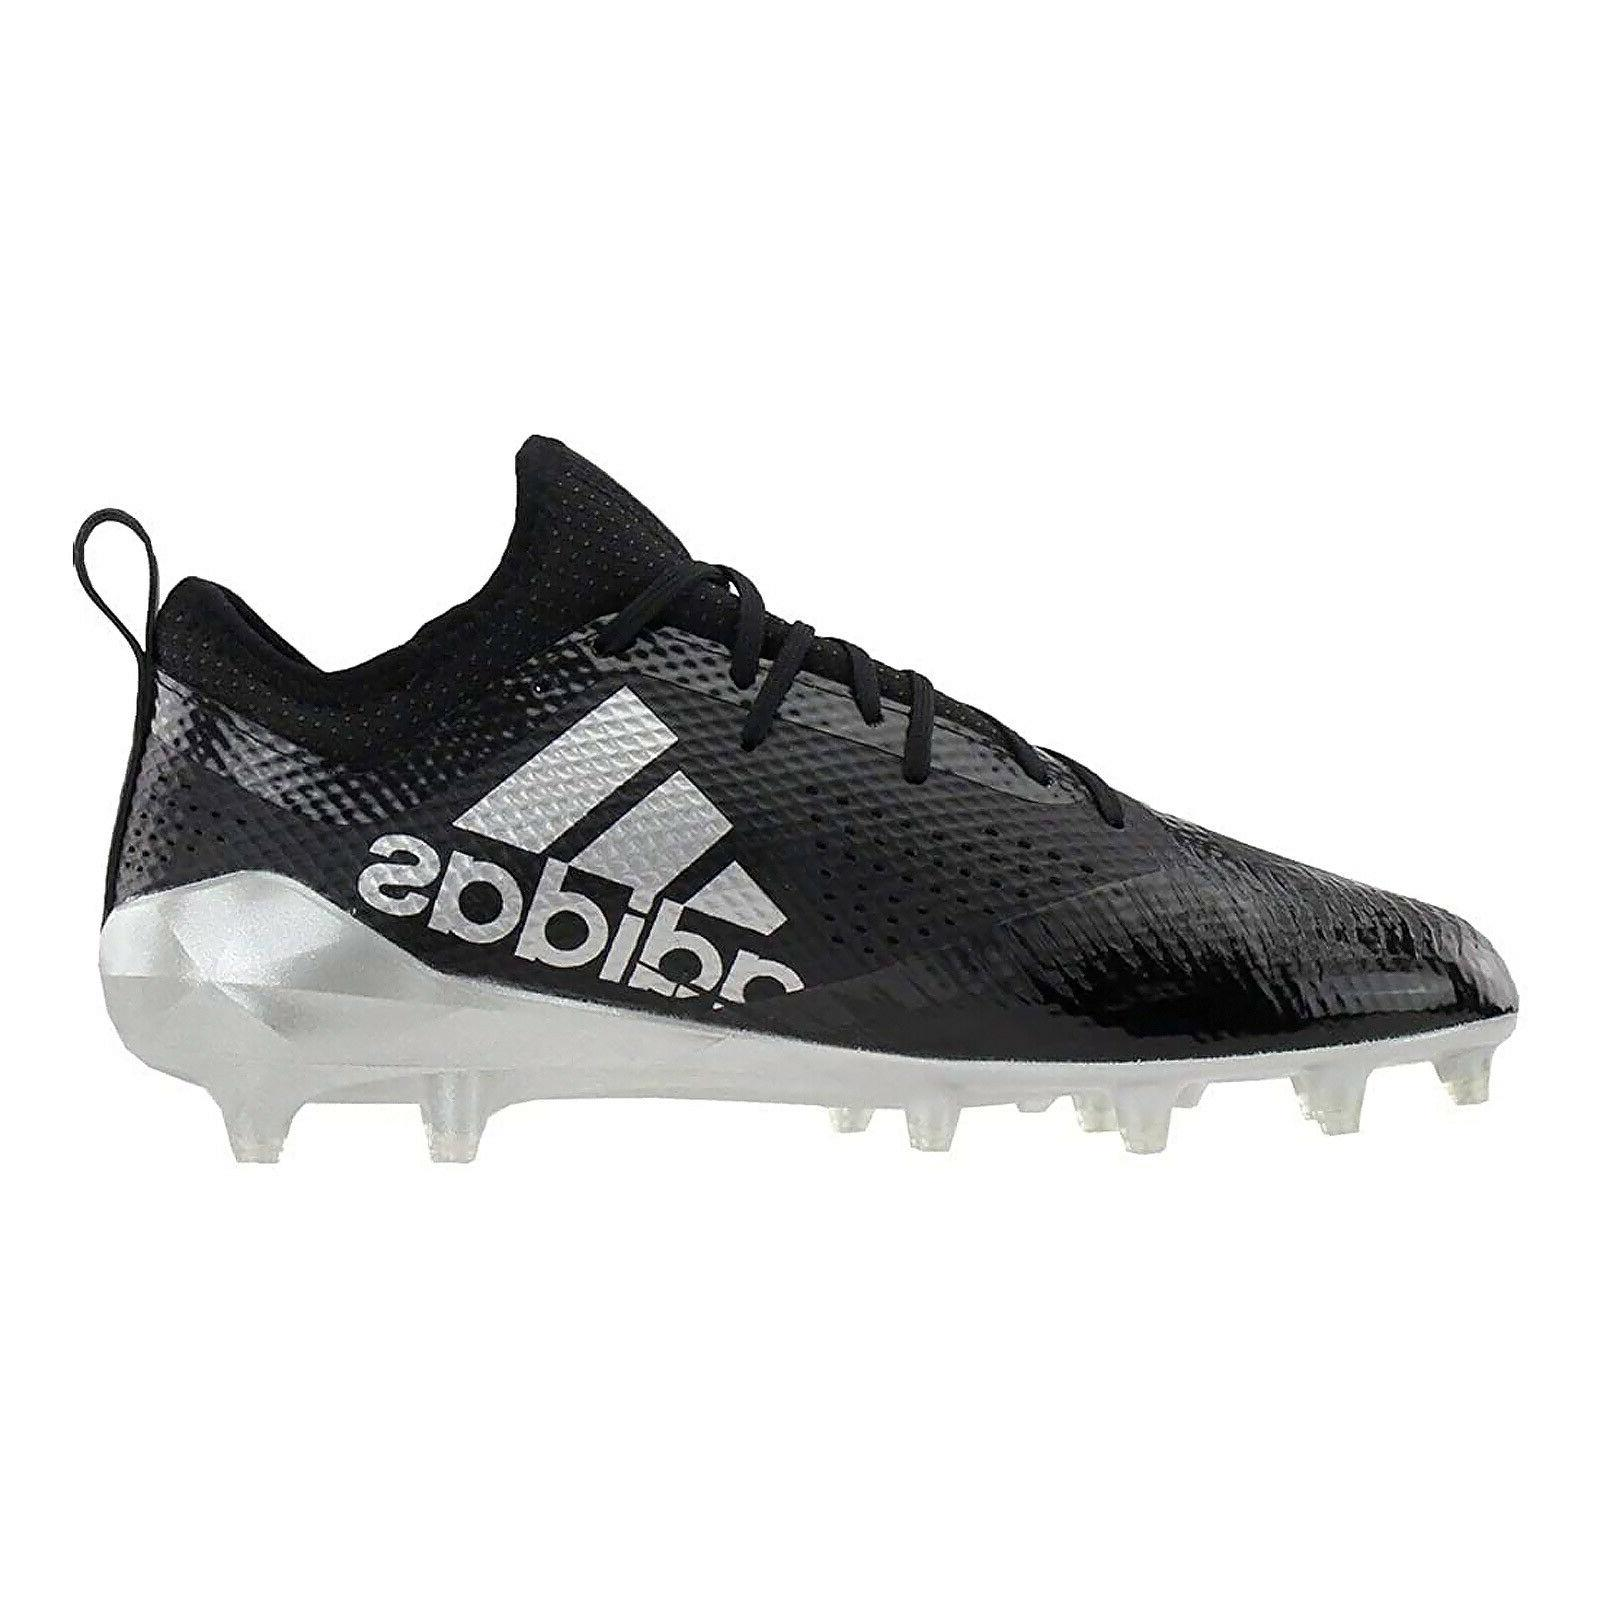 ADIDAS 5-STAR LOW Lacrosse Cleats Football SIZE